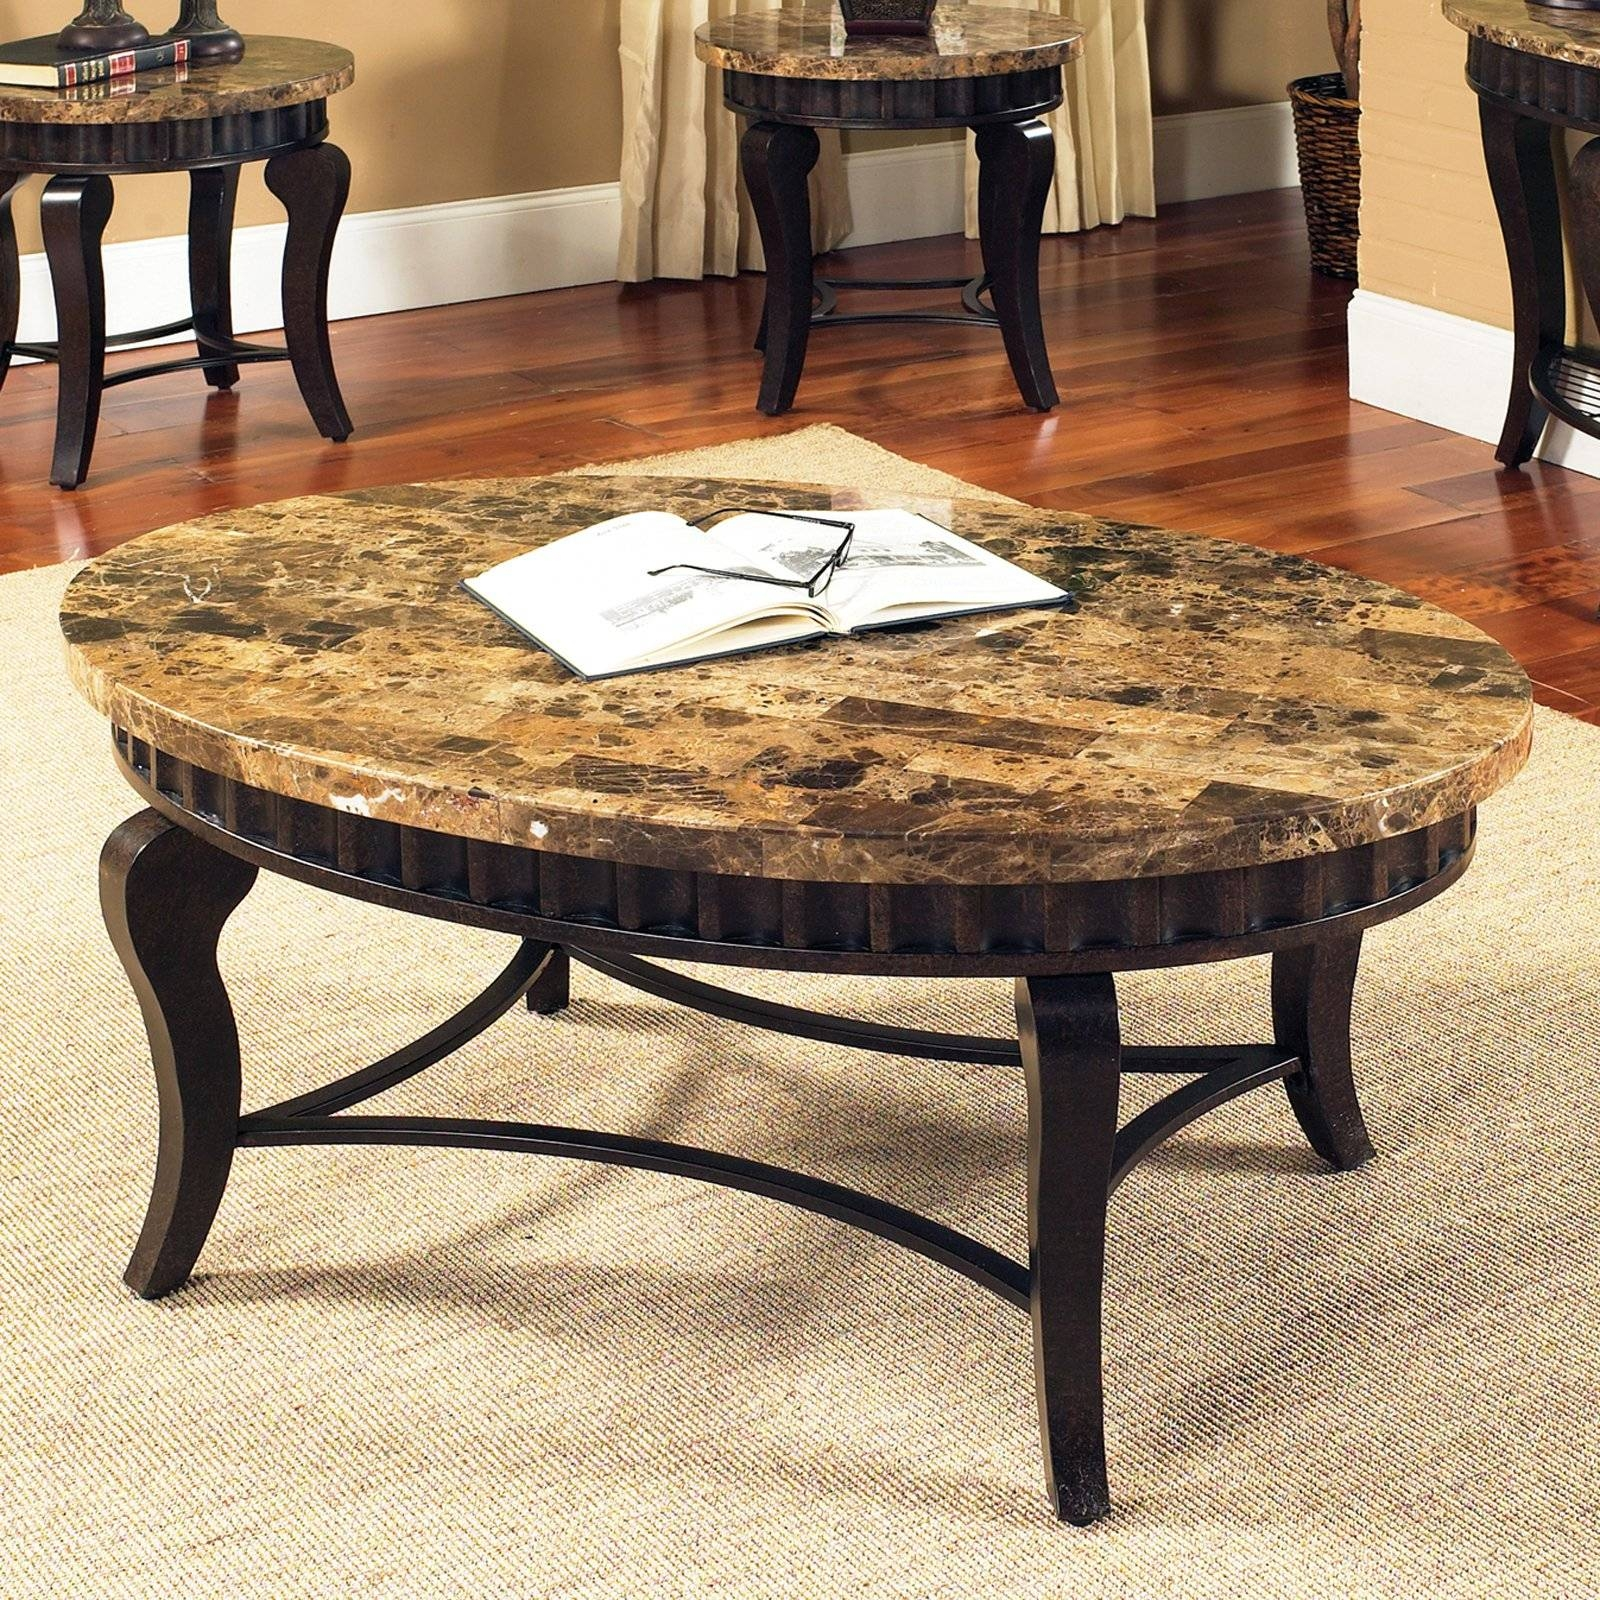 Round Marble Coffee Table Design — Coffee Table's Zone : Ideas Of regarding Marble Round Coffee Tables (Image 28 of 30)